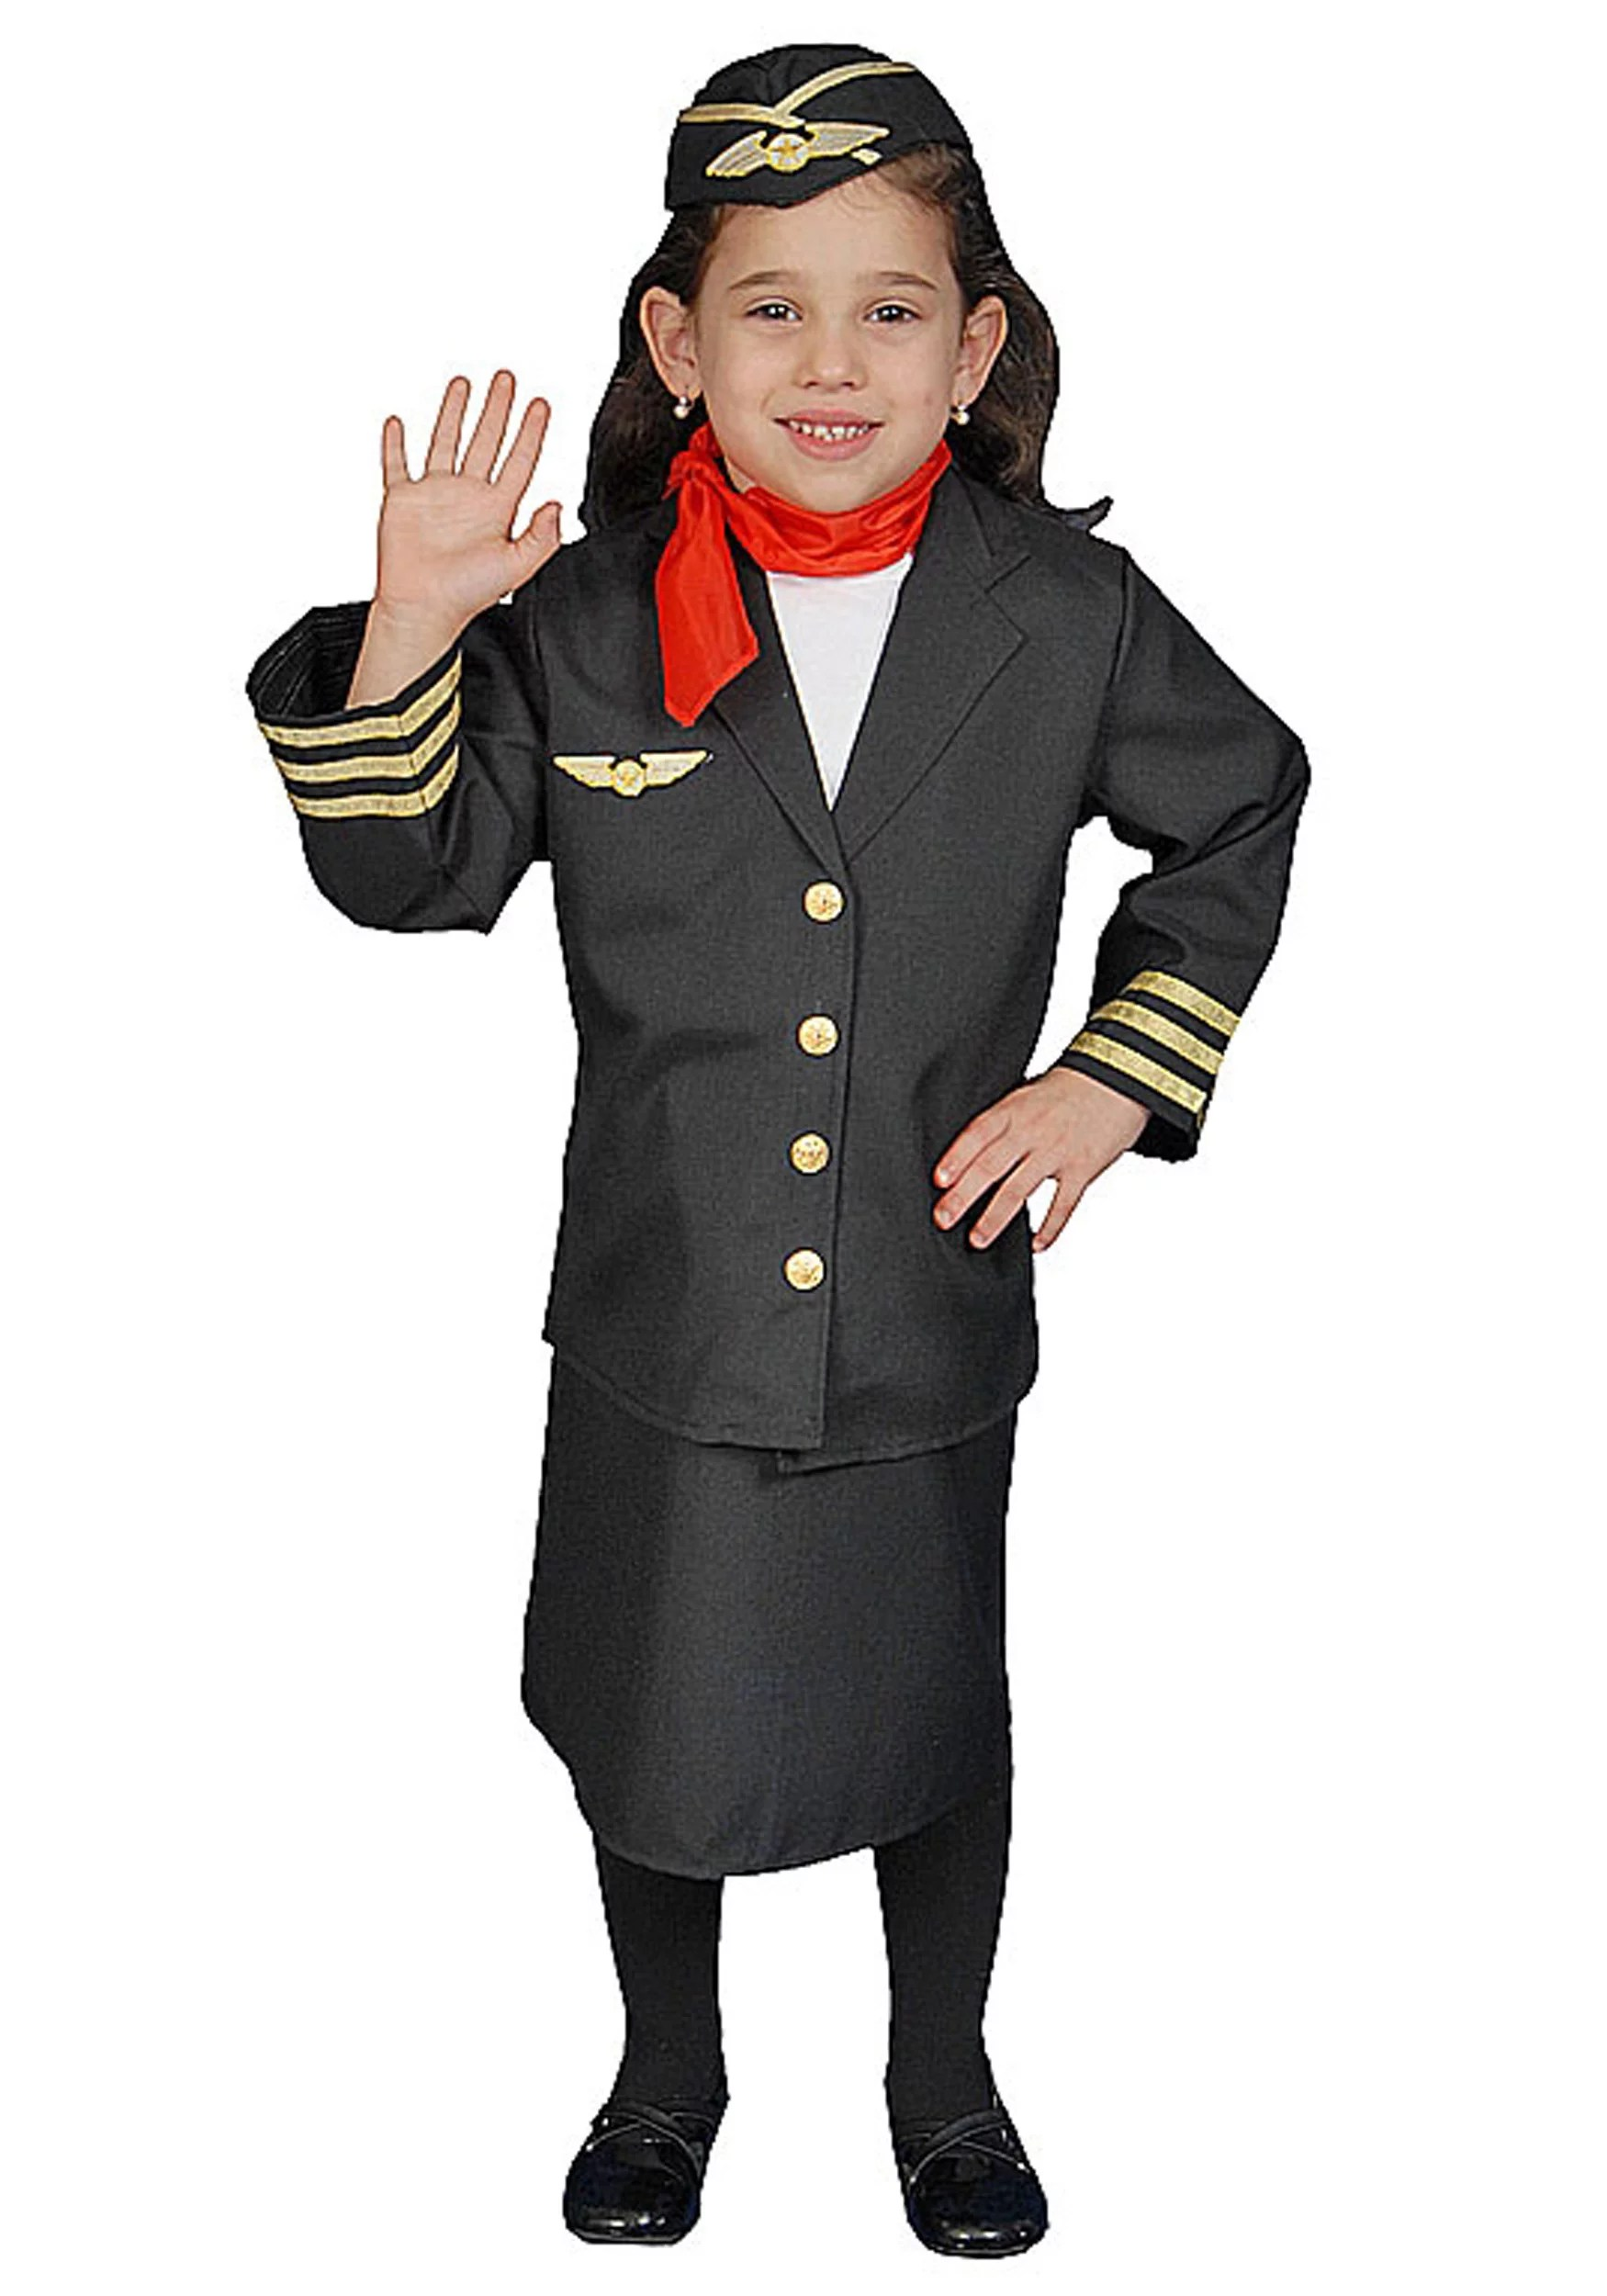 Dress Up America 366 L Flight Attendant Set Costume Size Large - Neck Scarf Air Hostess